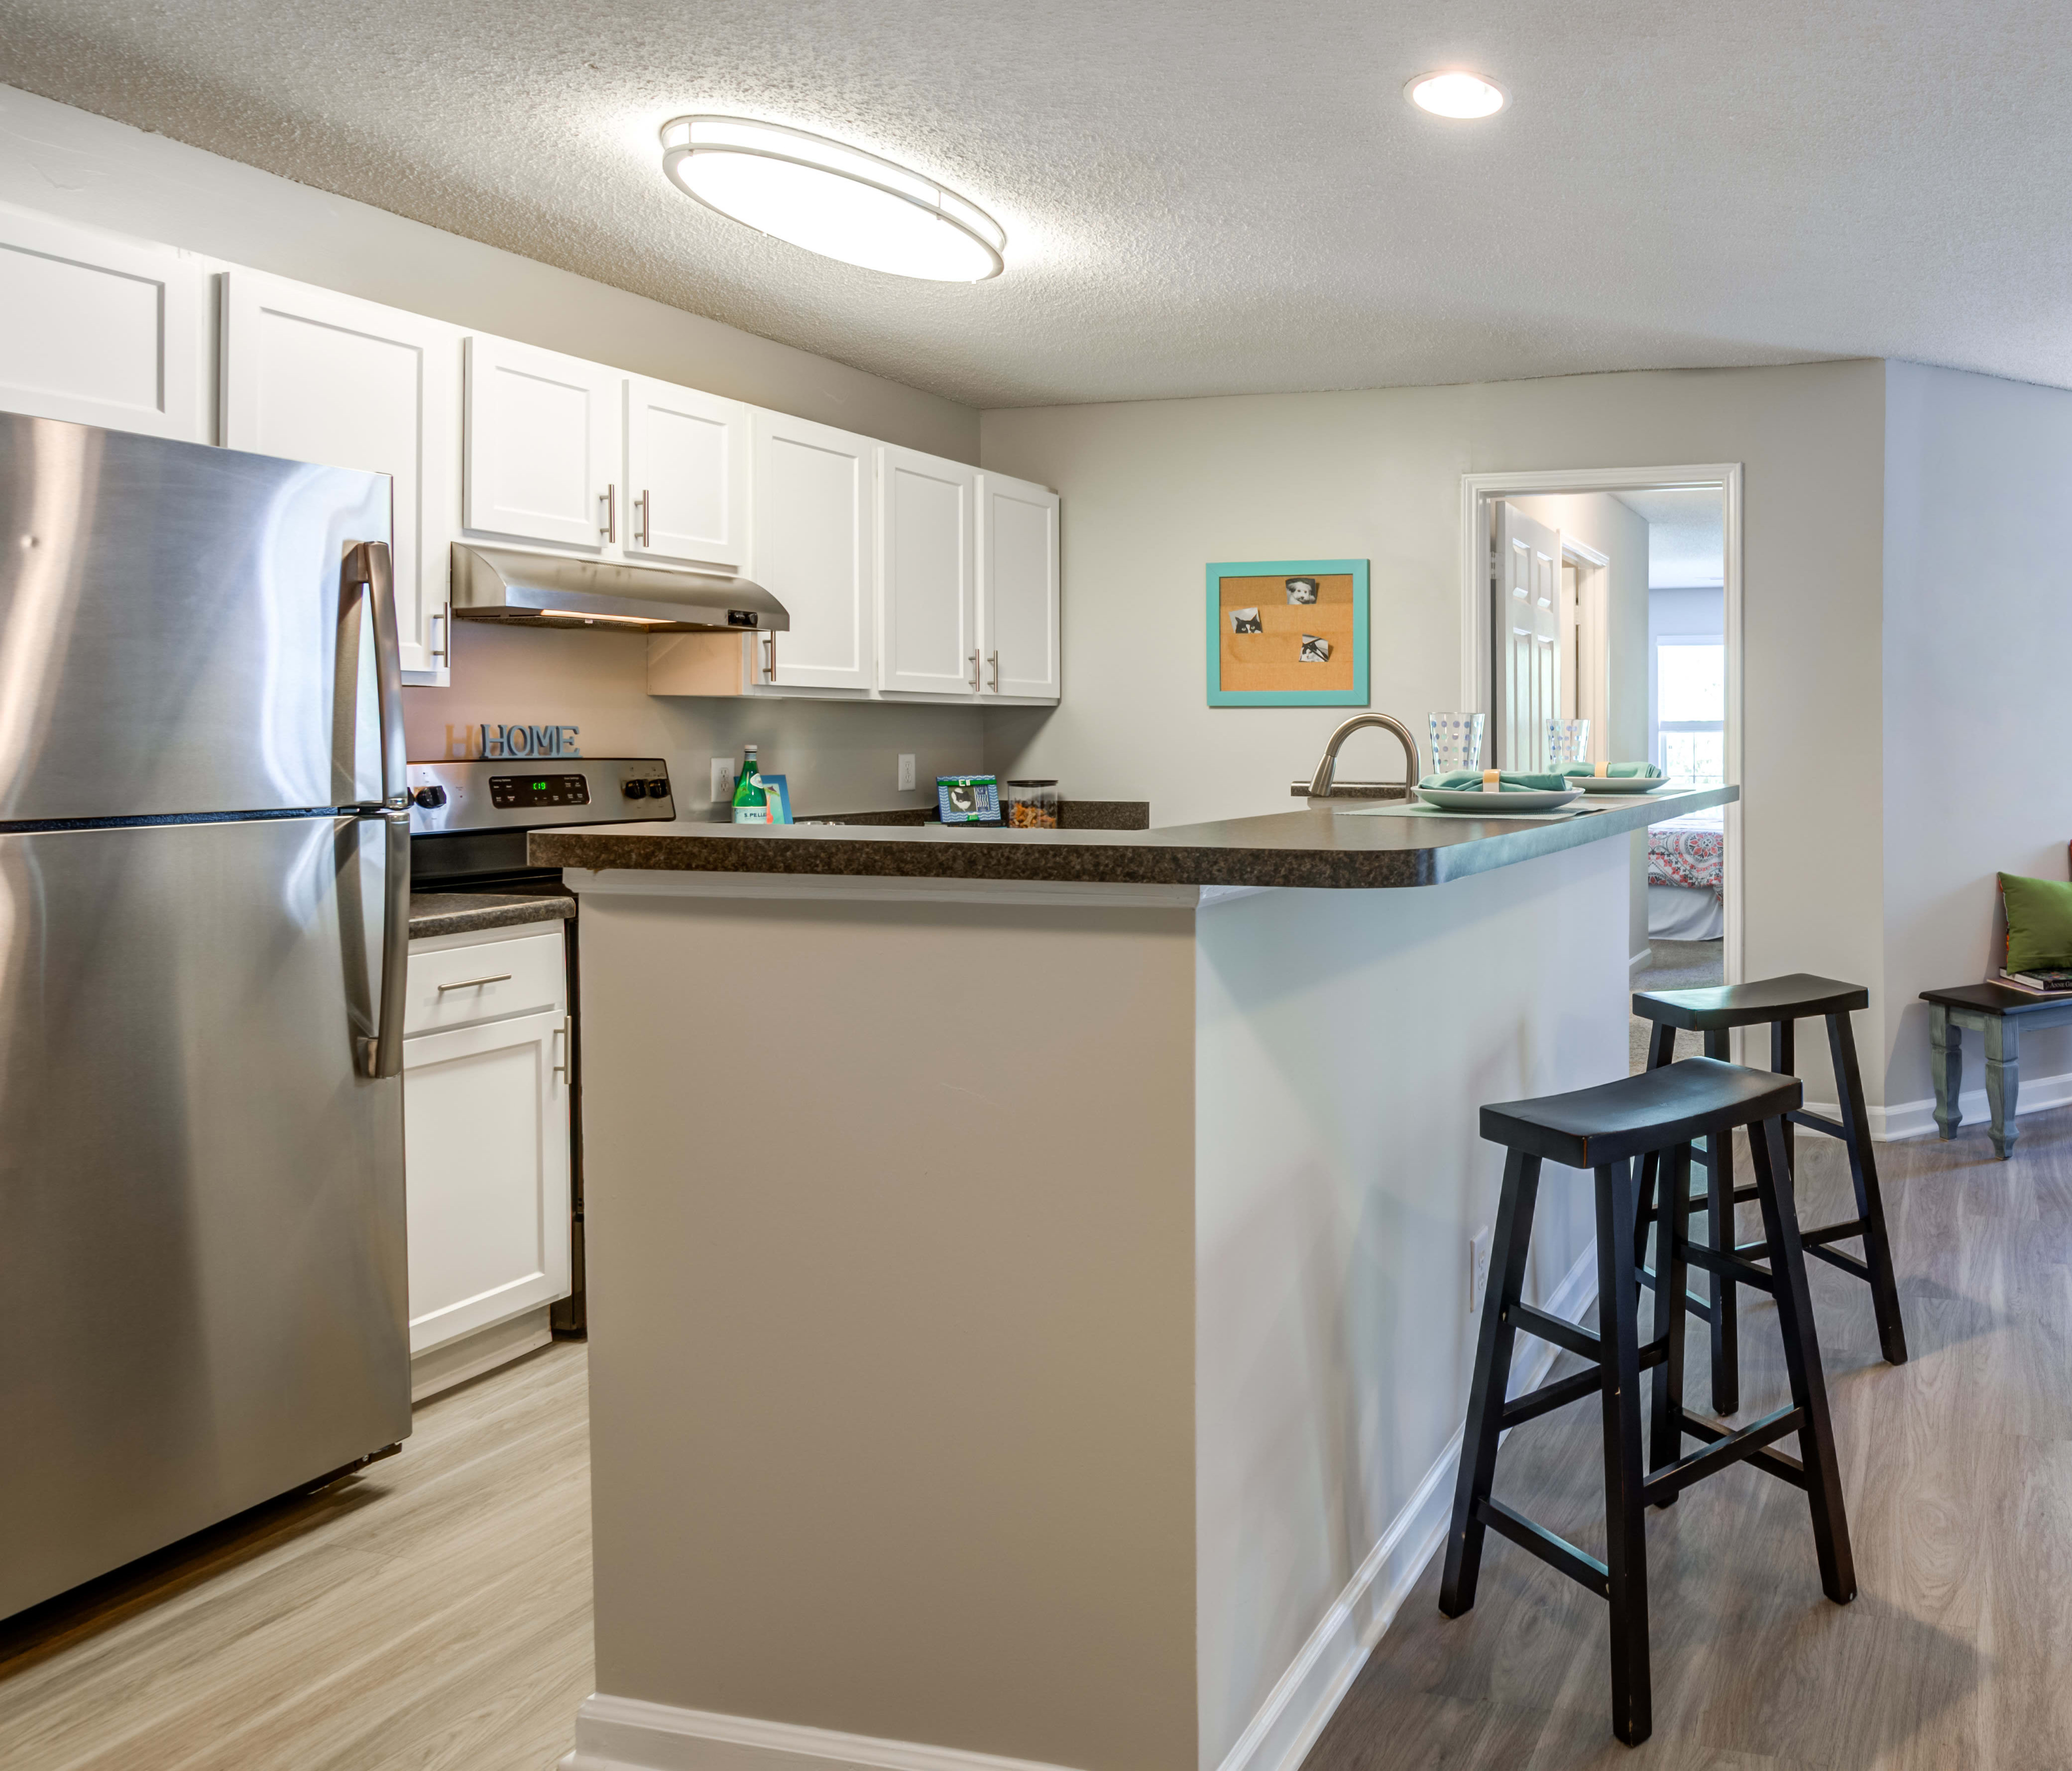 Upgraded kitchen at The Village Apartments